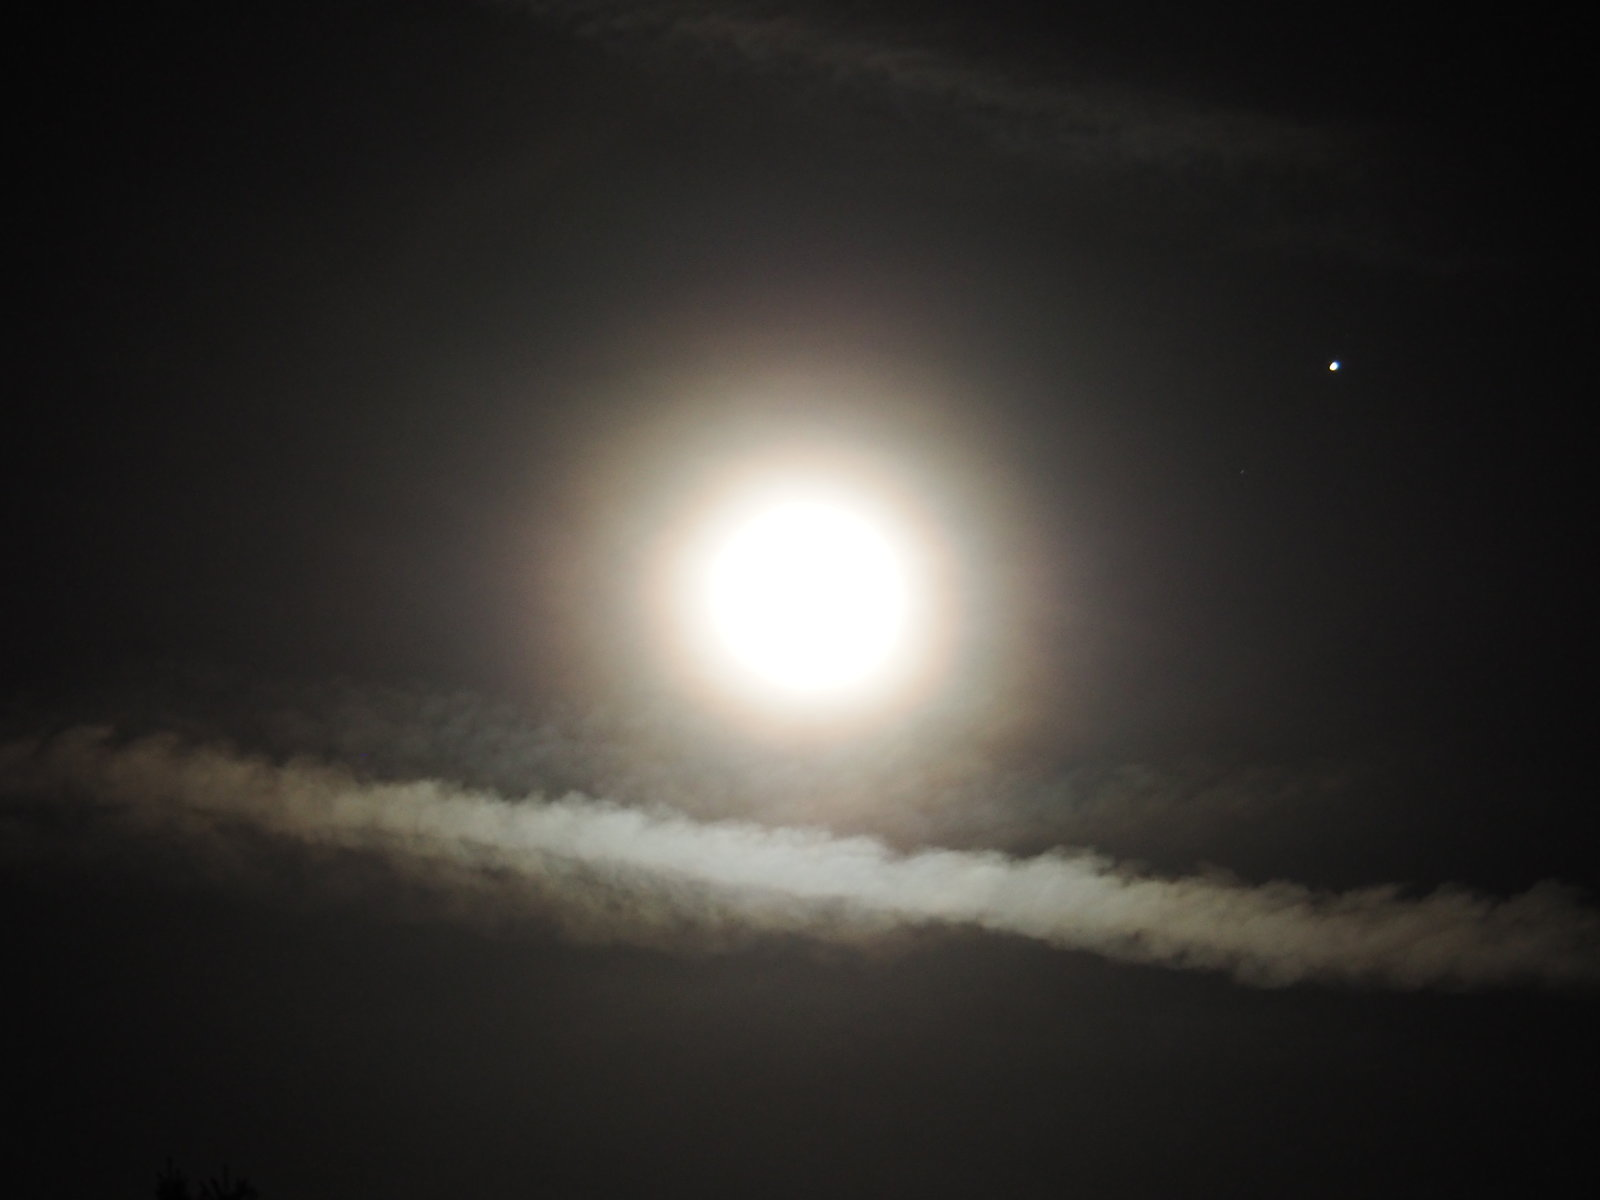 OMD 2 jupiter and moon 010.JPG